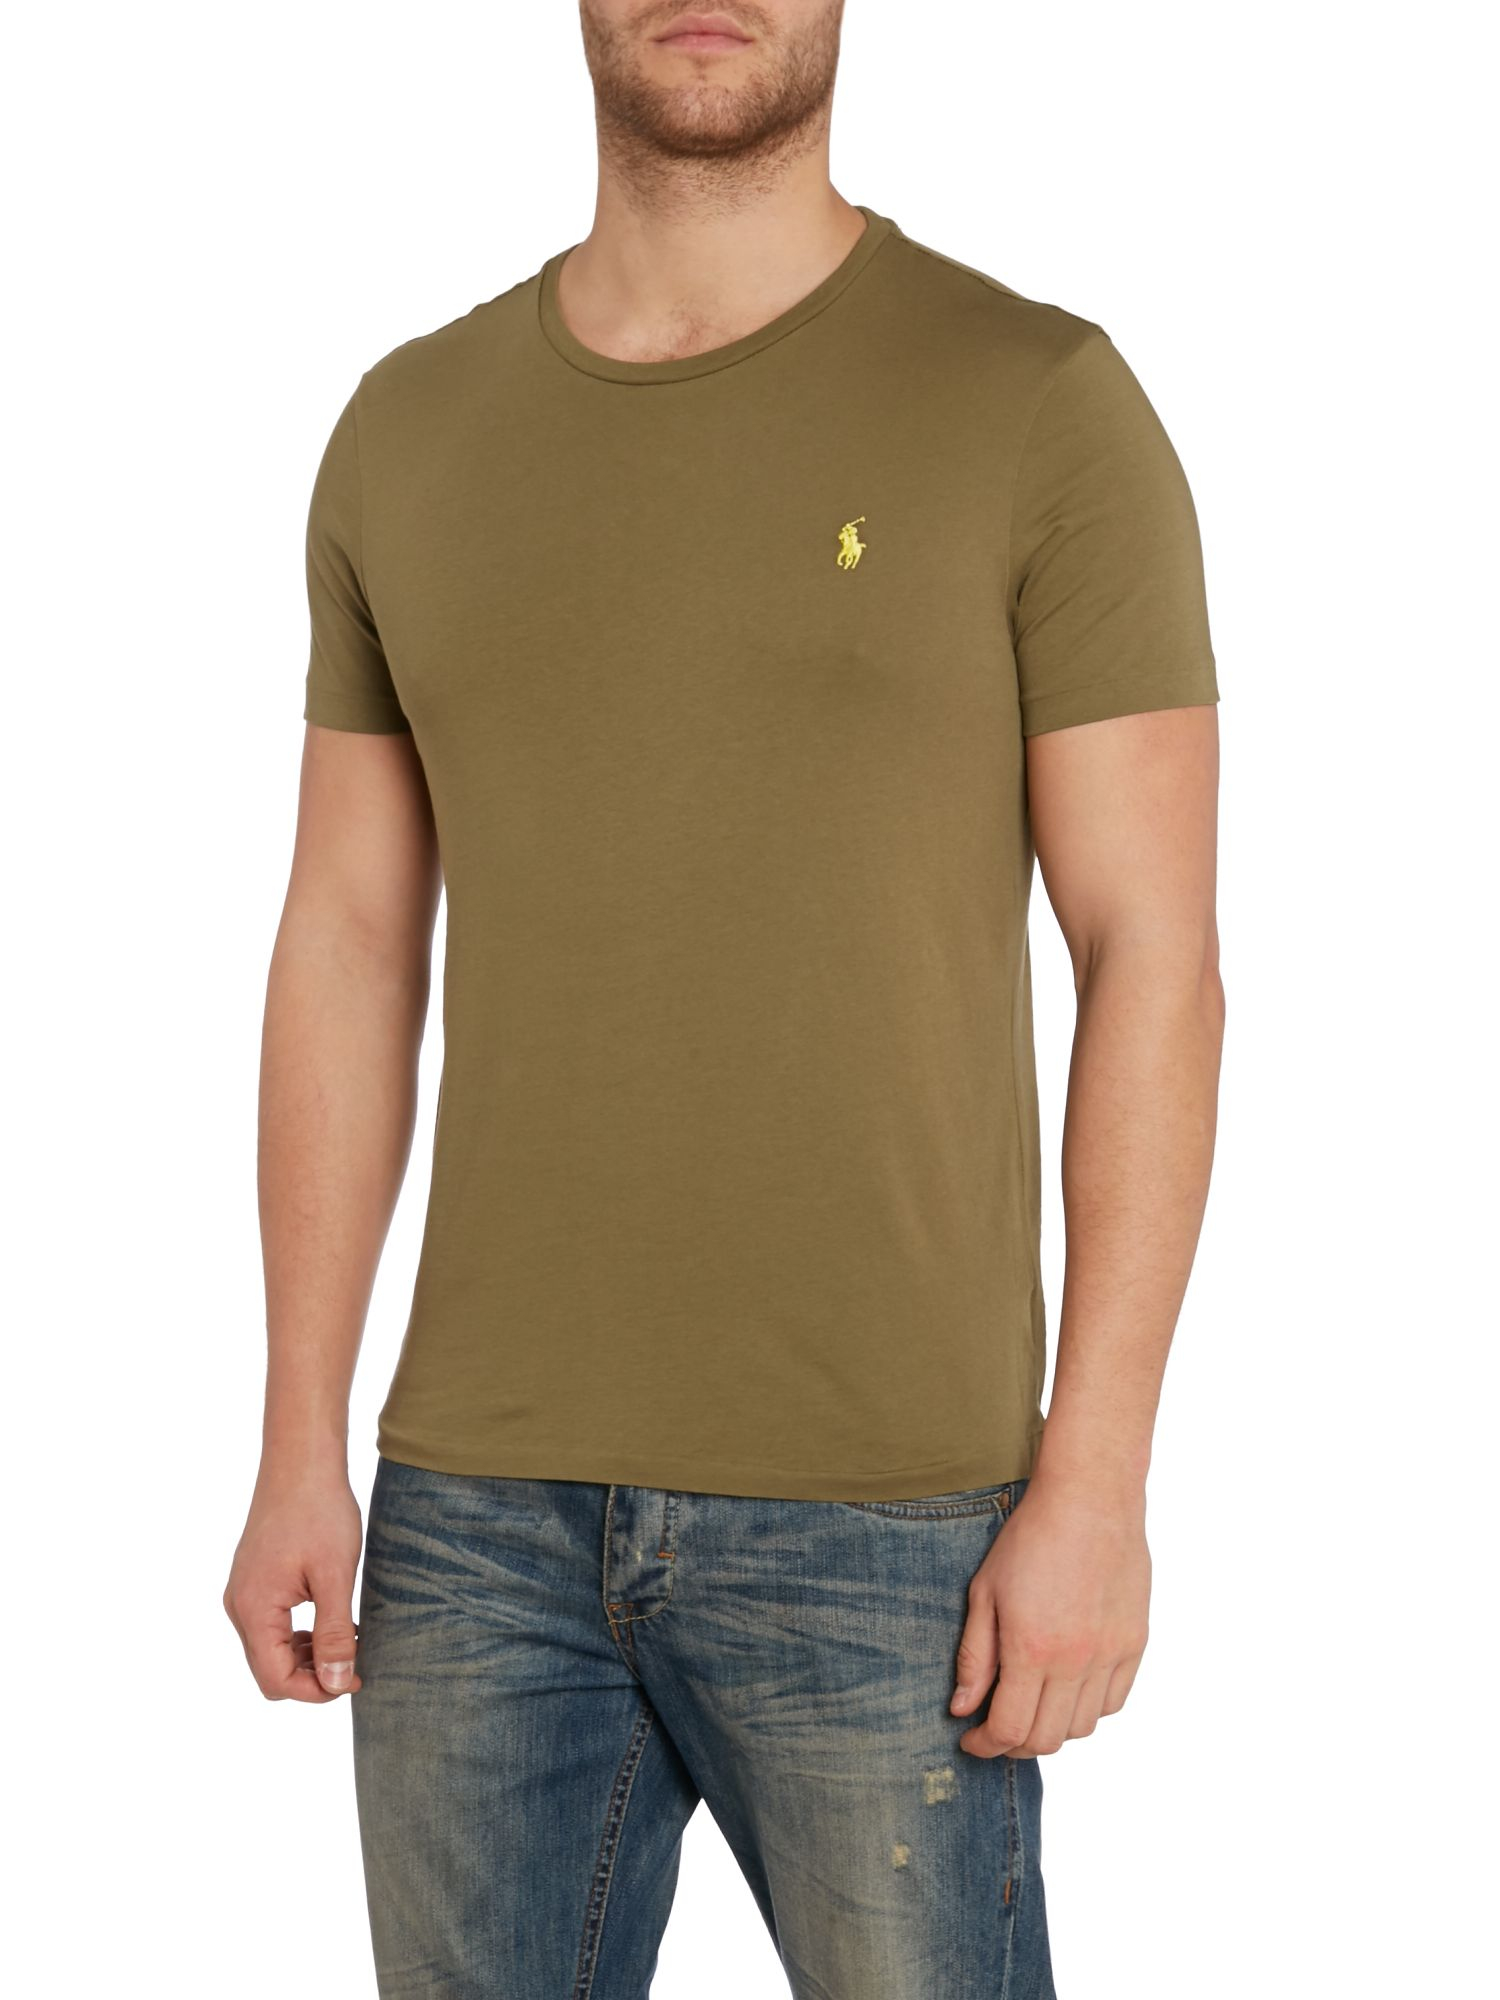 polo ralph lauren custom fit crew neck short sleeve t shirt in green for men lyst. Black Bedroom Furniture Sets. Home Design Ideas